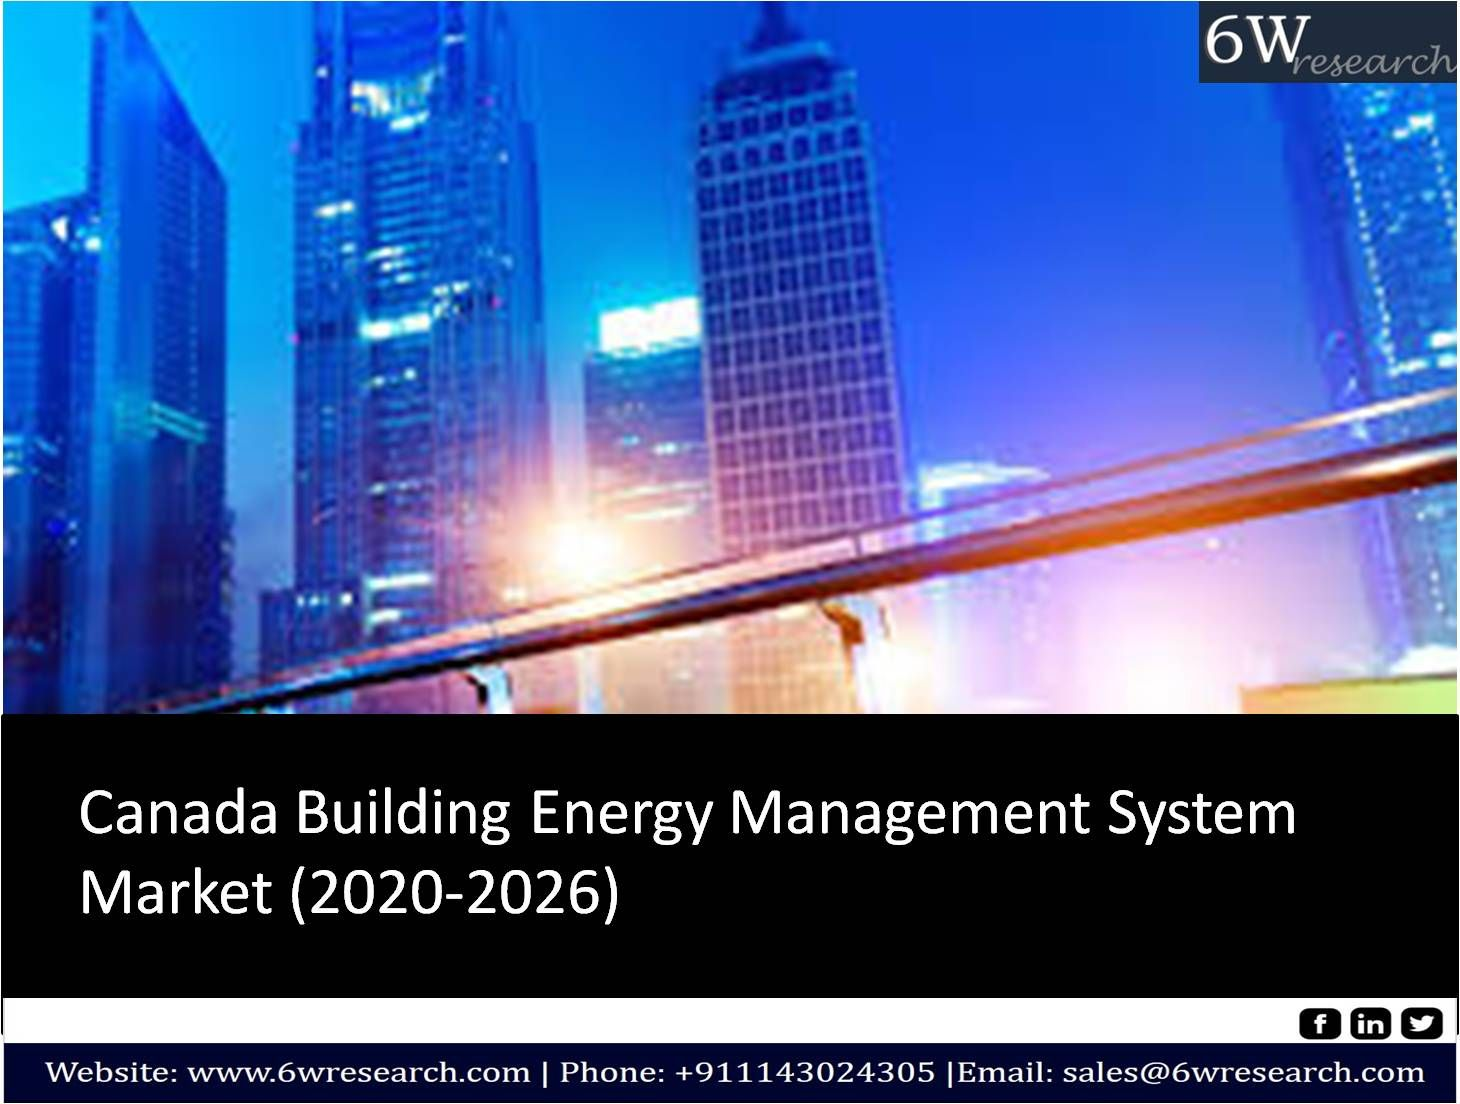 Canada Building Energy Management System Market 2020 2026 In 2020 Energy Management Marketing Management